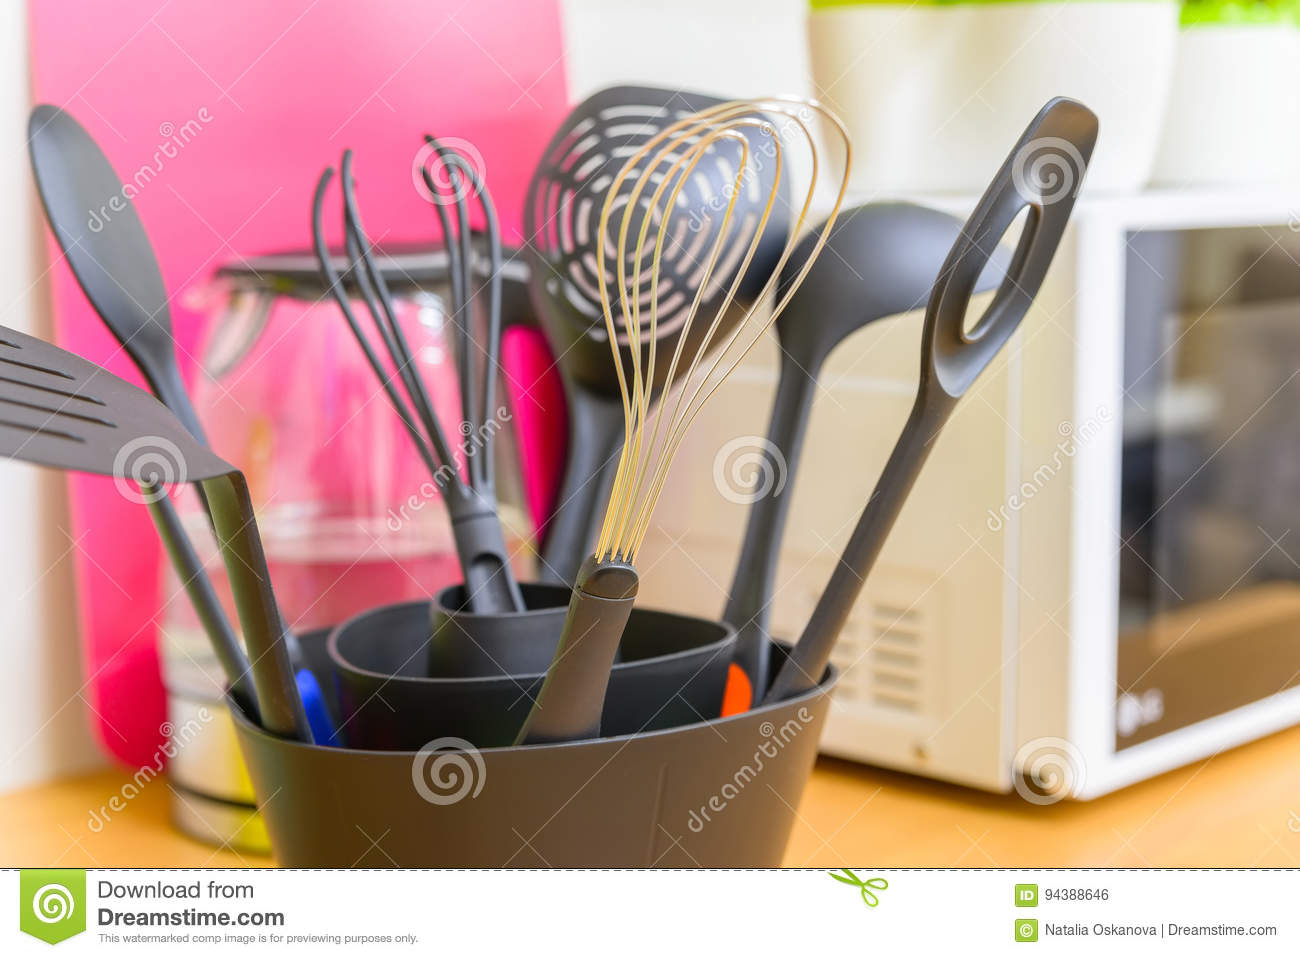 Download Modern Plastic Kitchen Utensils In Stand Stock Photo   Image Of  Color, Group: